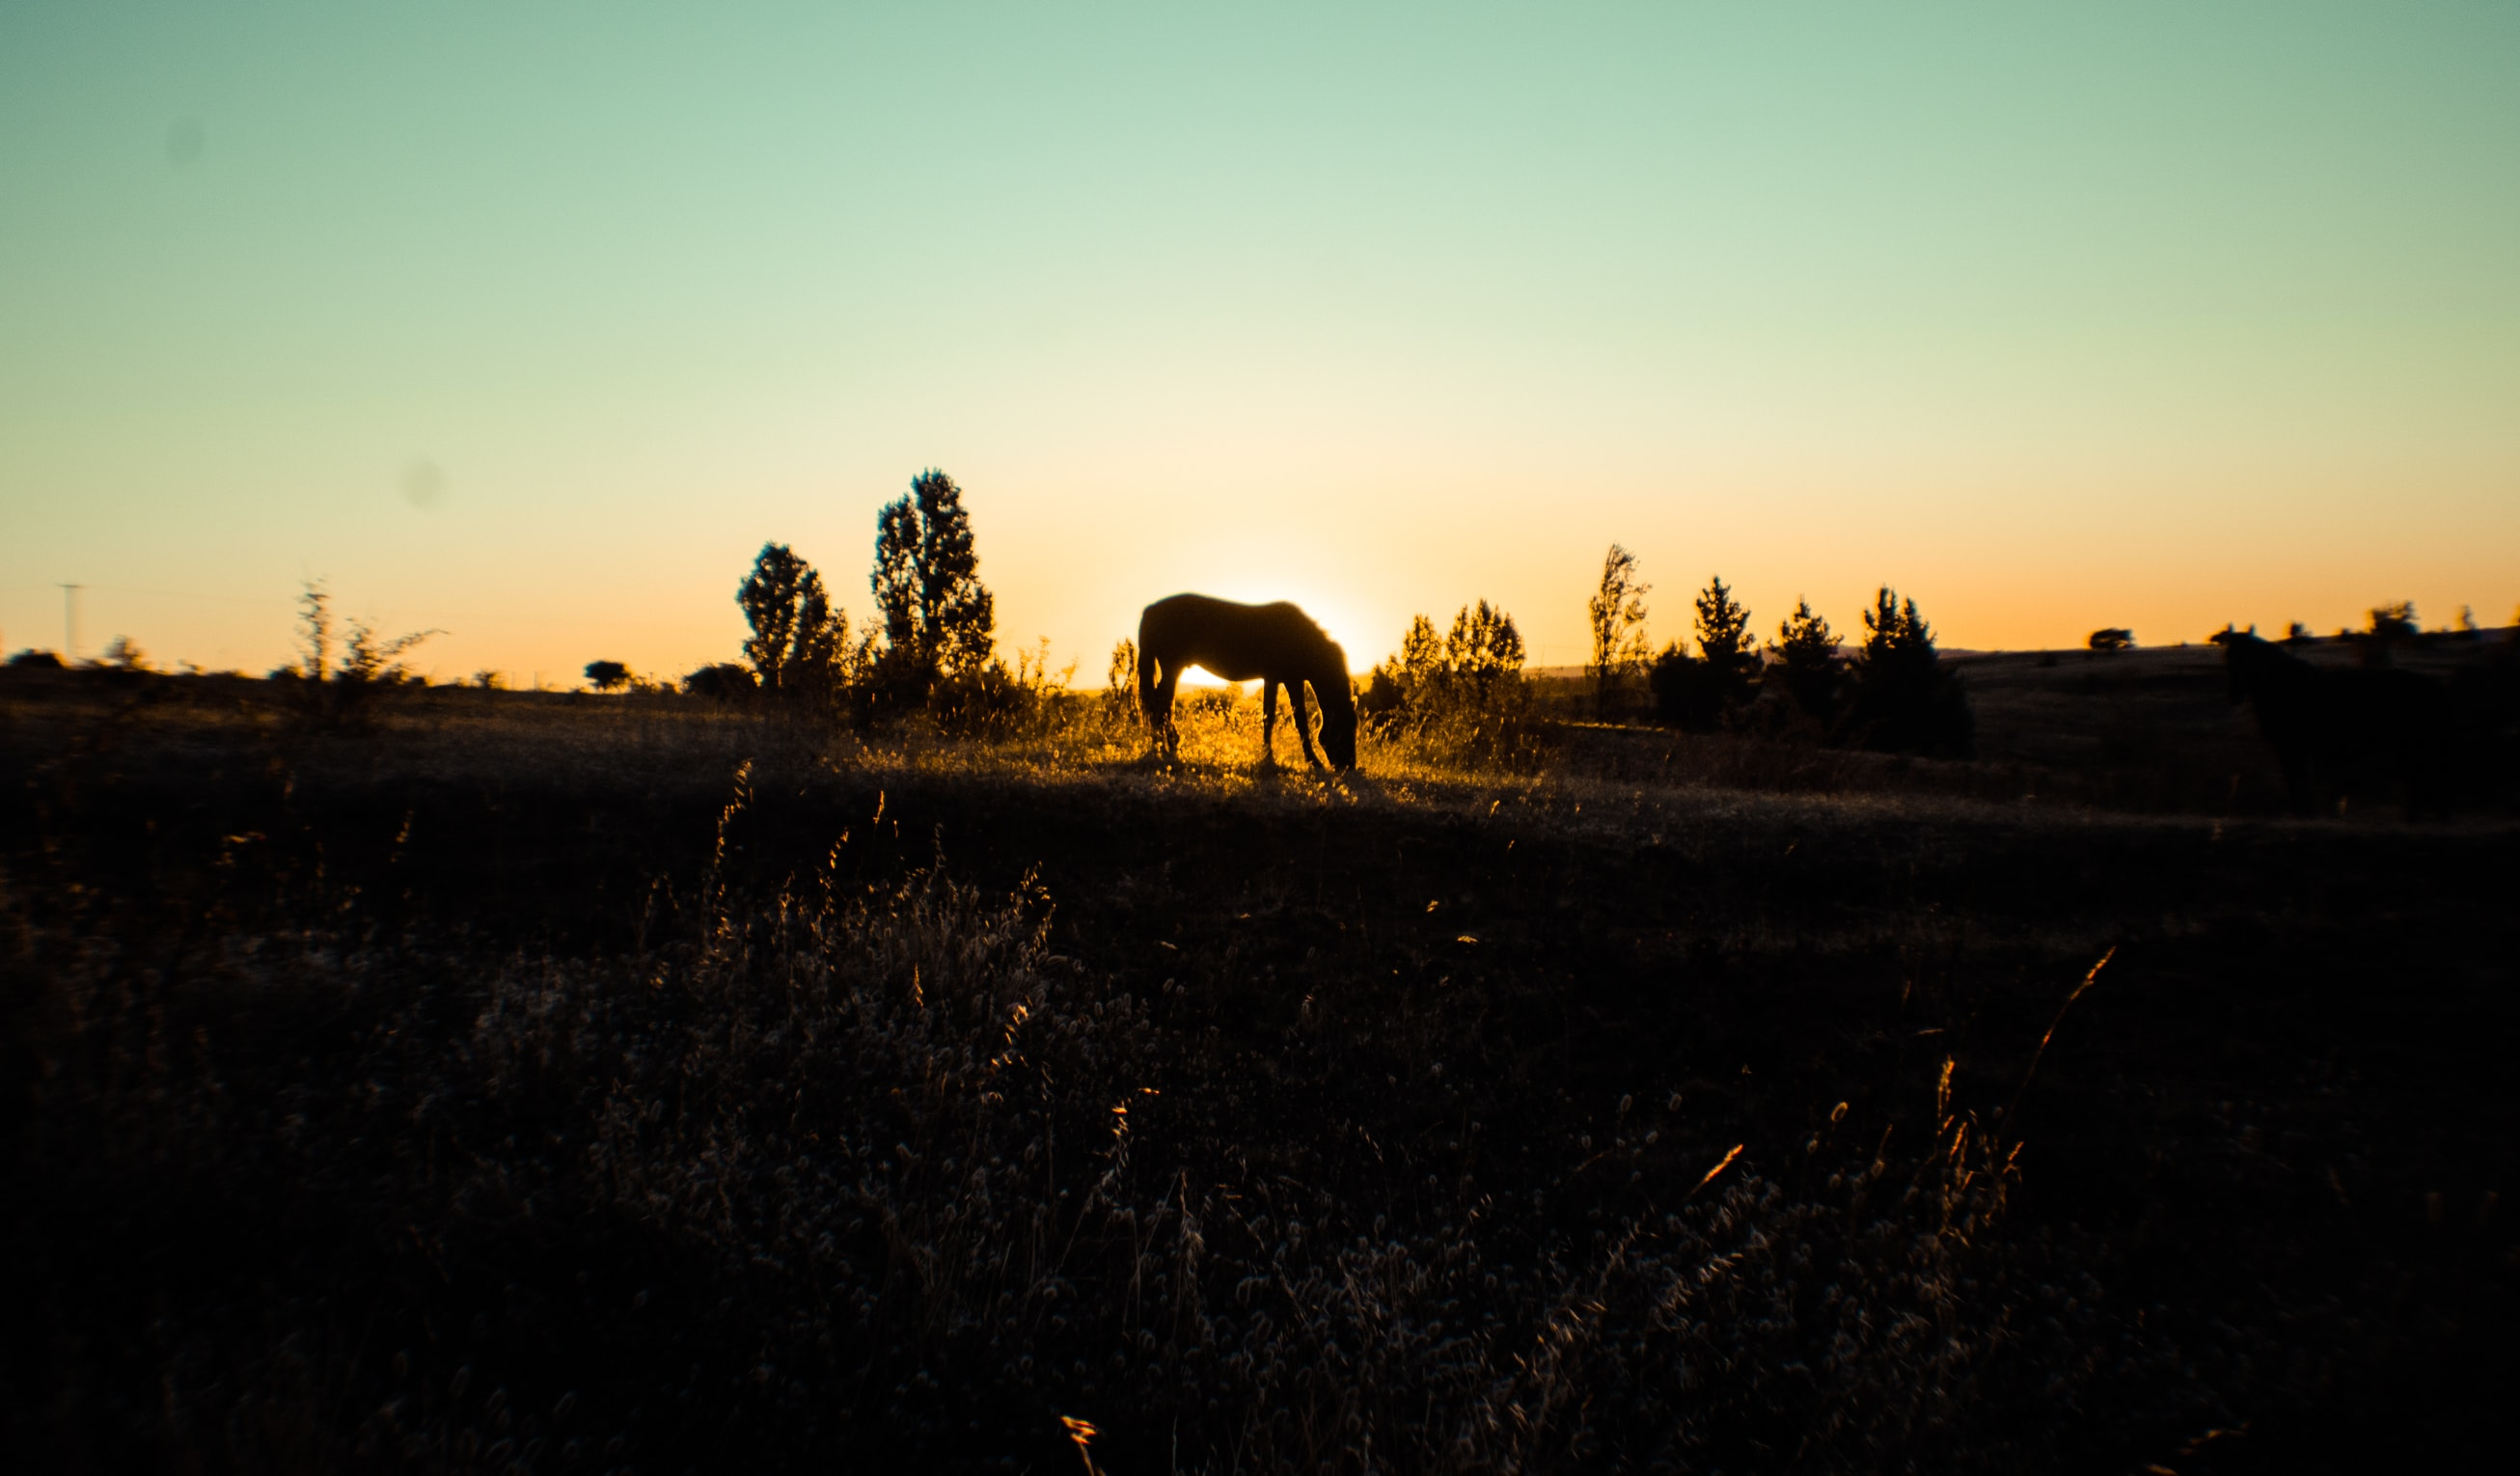 The silhouette of a lone horse grazing on grass during sunset